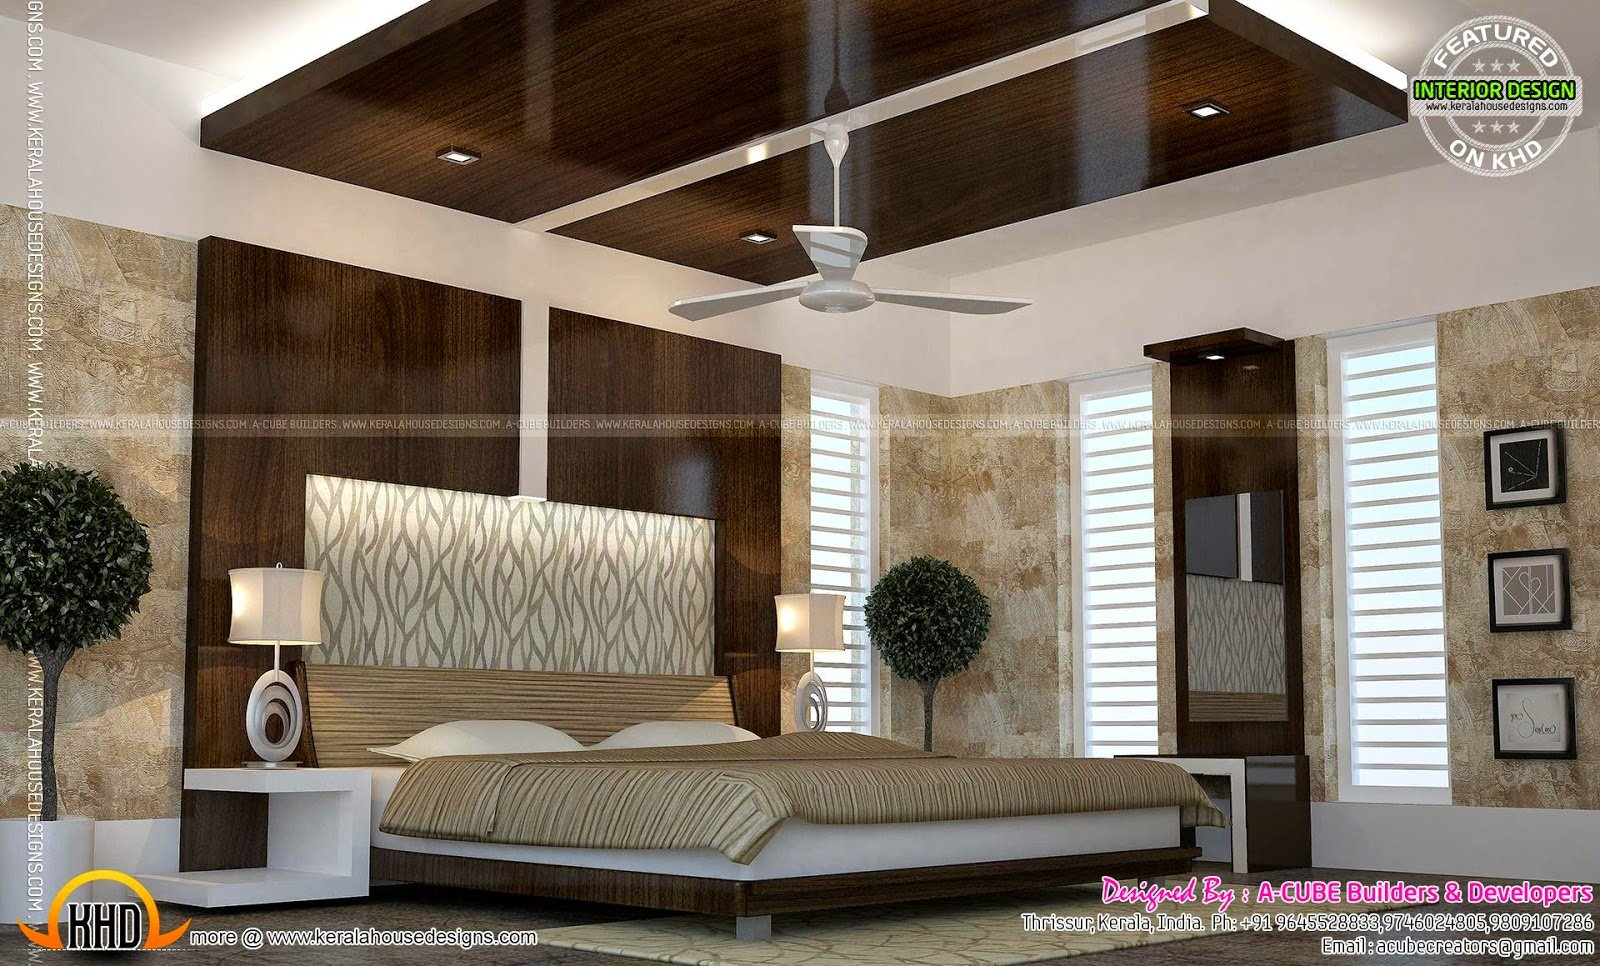 Best Kerala Interior Design Ideas Kerala Home Design And With Pictures